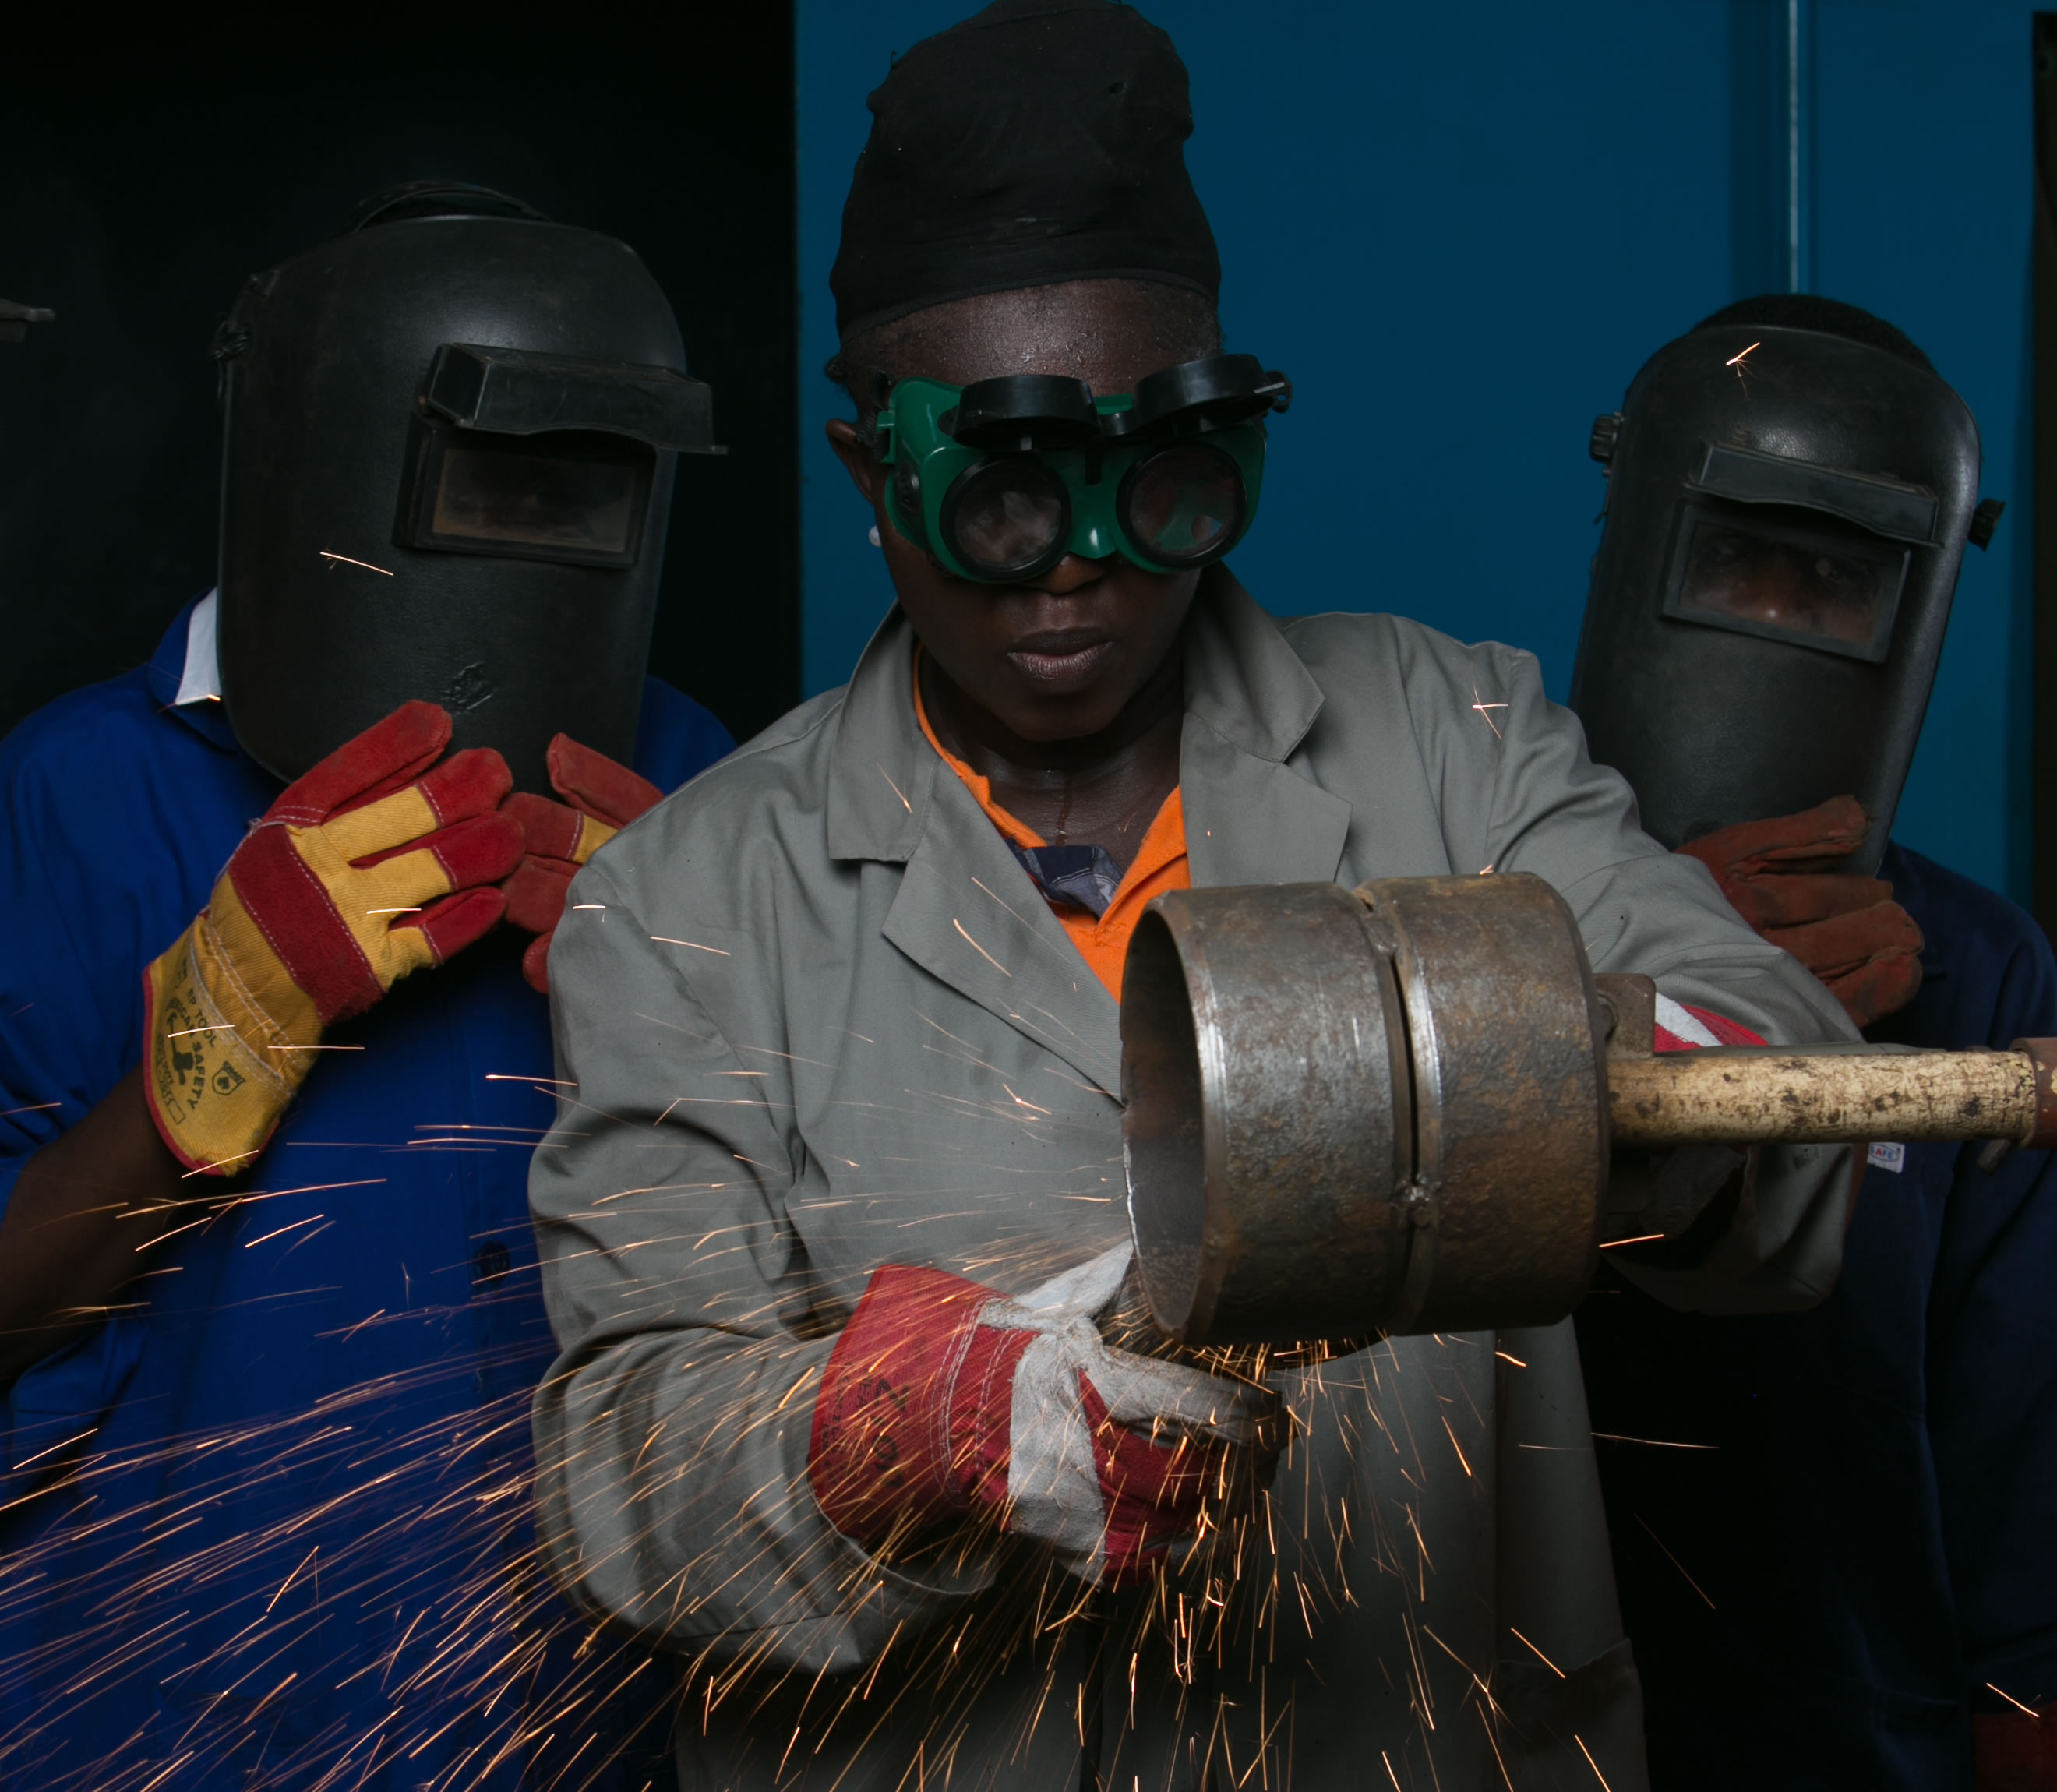 Welding and Construction